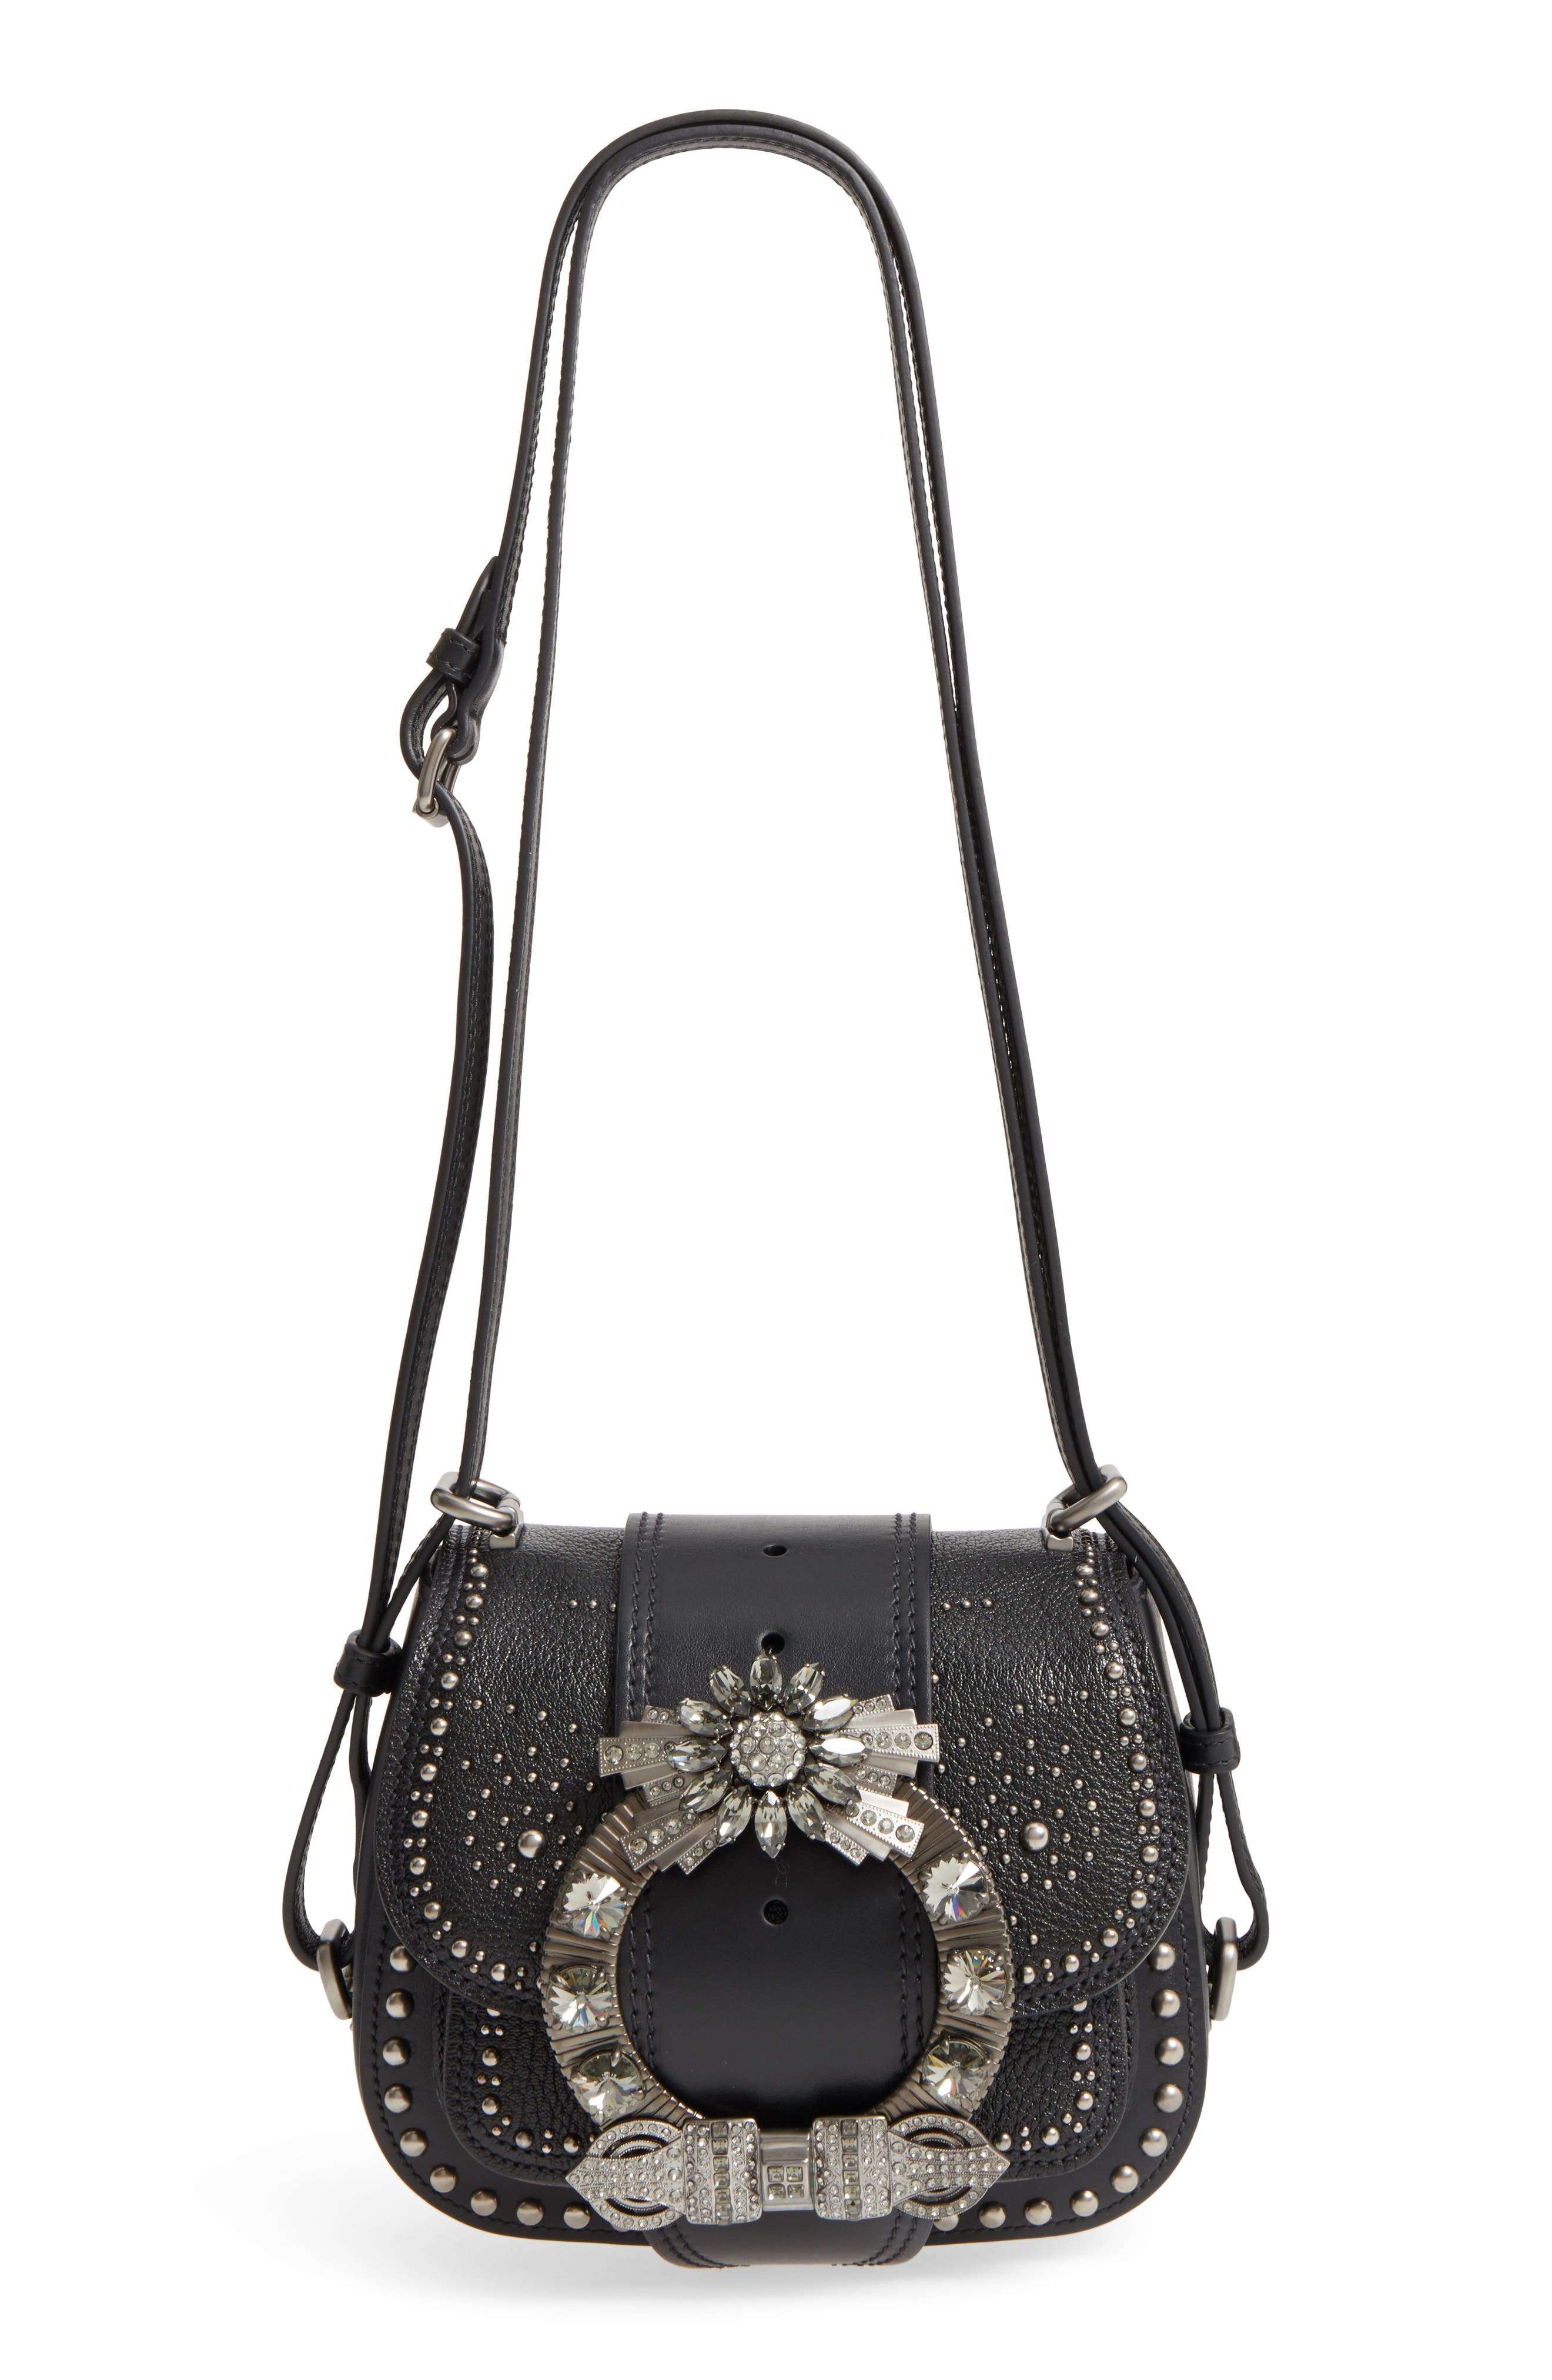 Dahlia Leather Shoulder Bag,                         Main,                         color, NERO